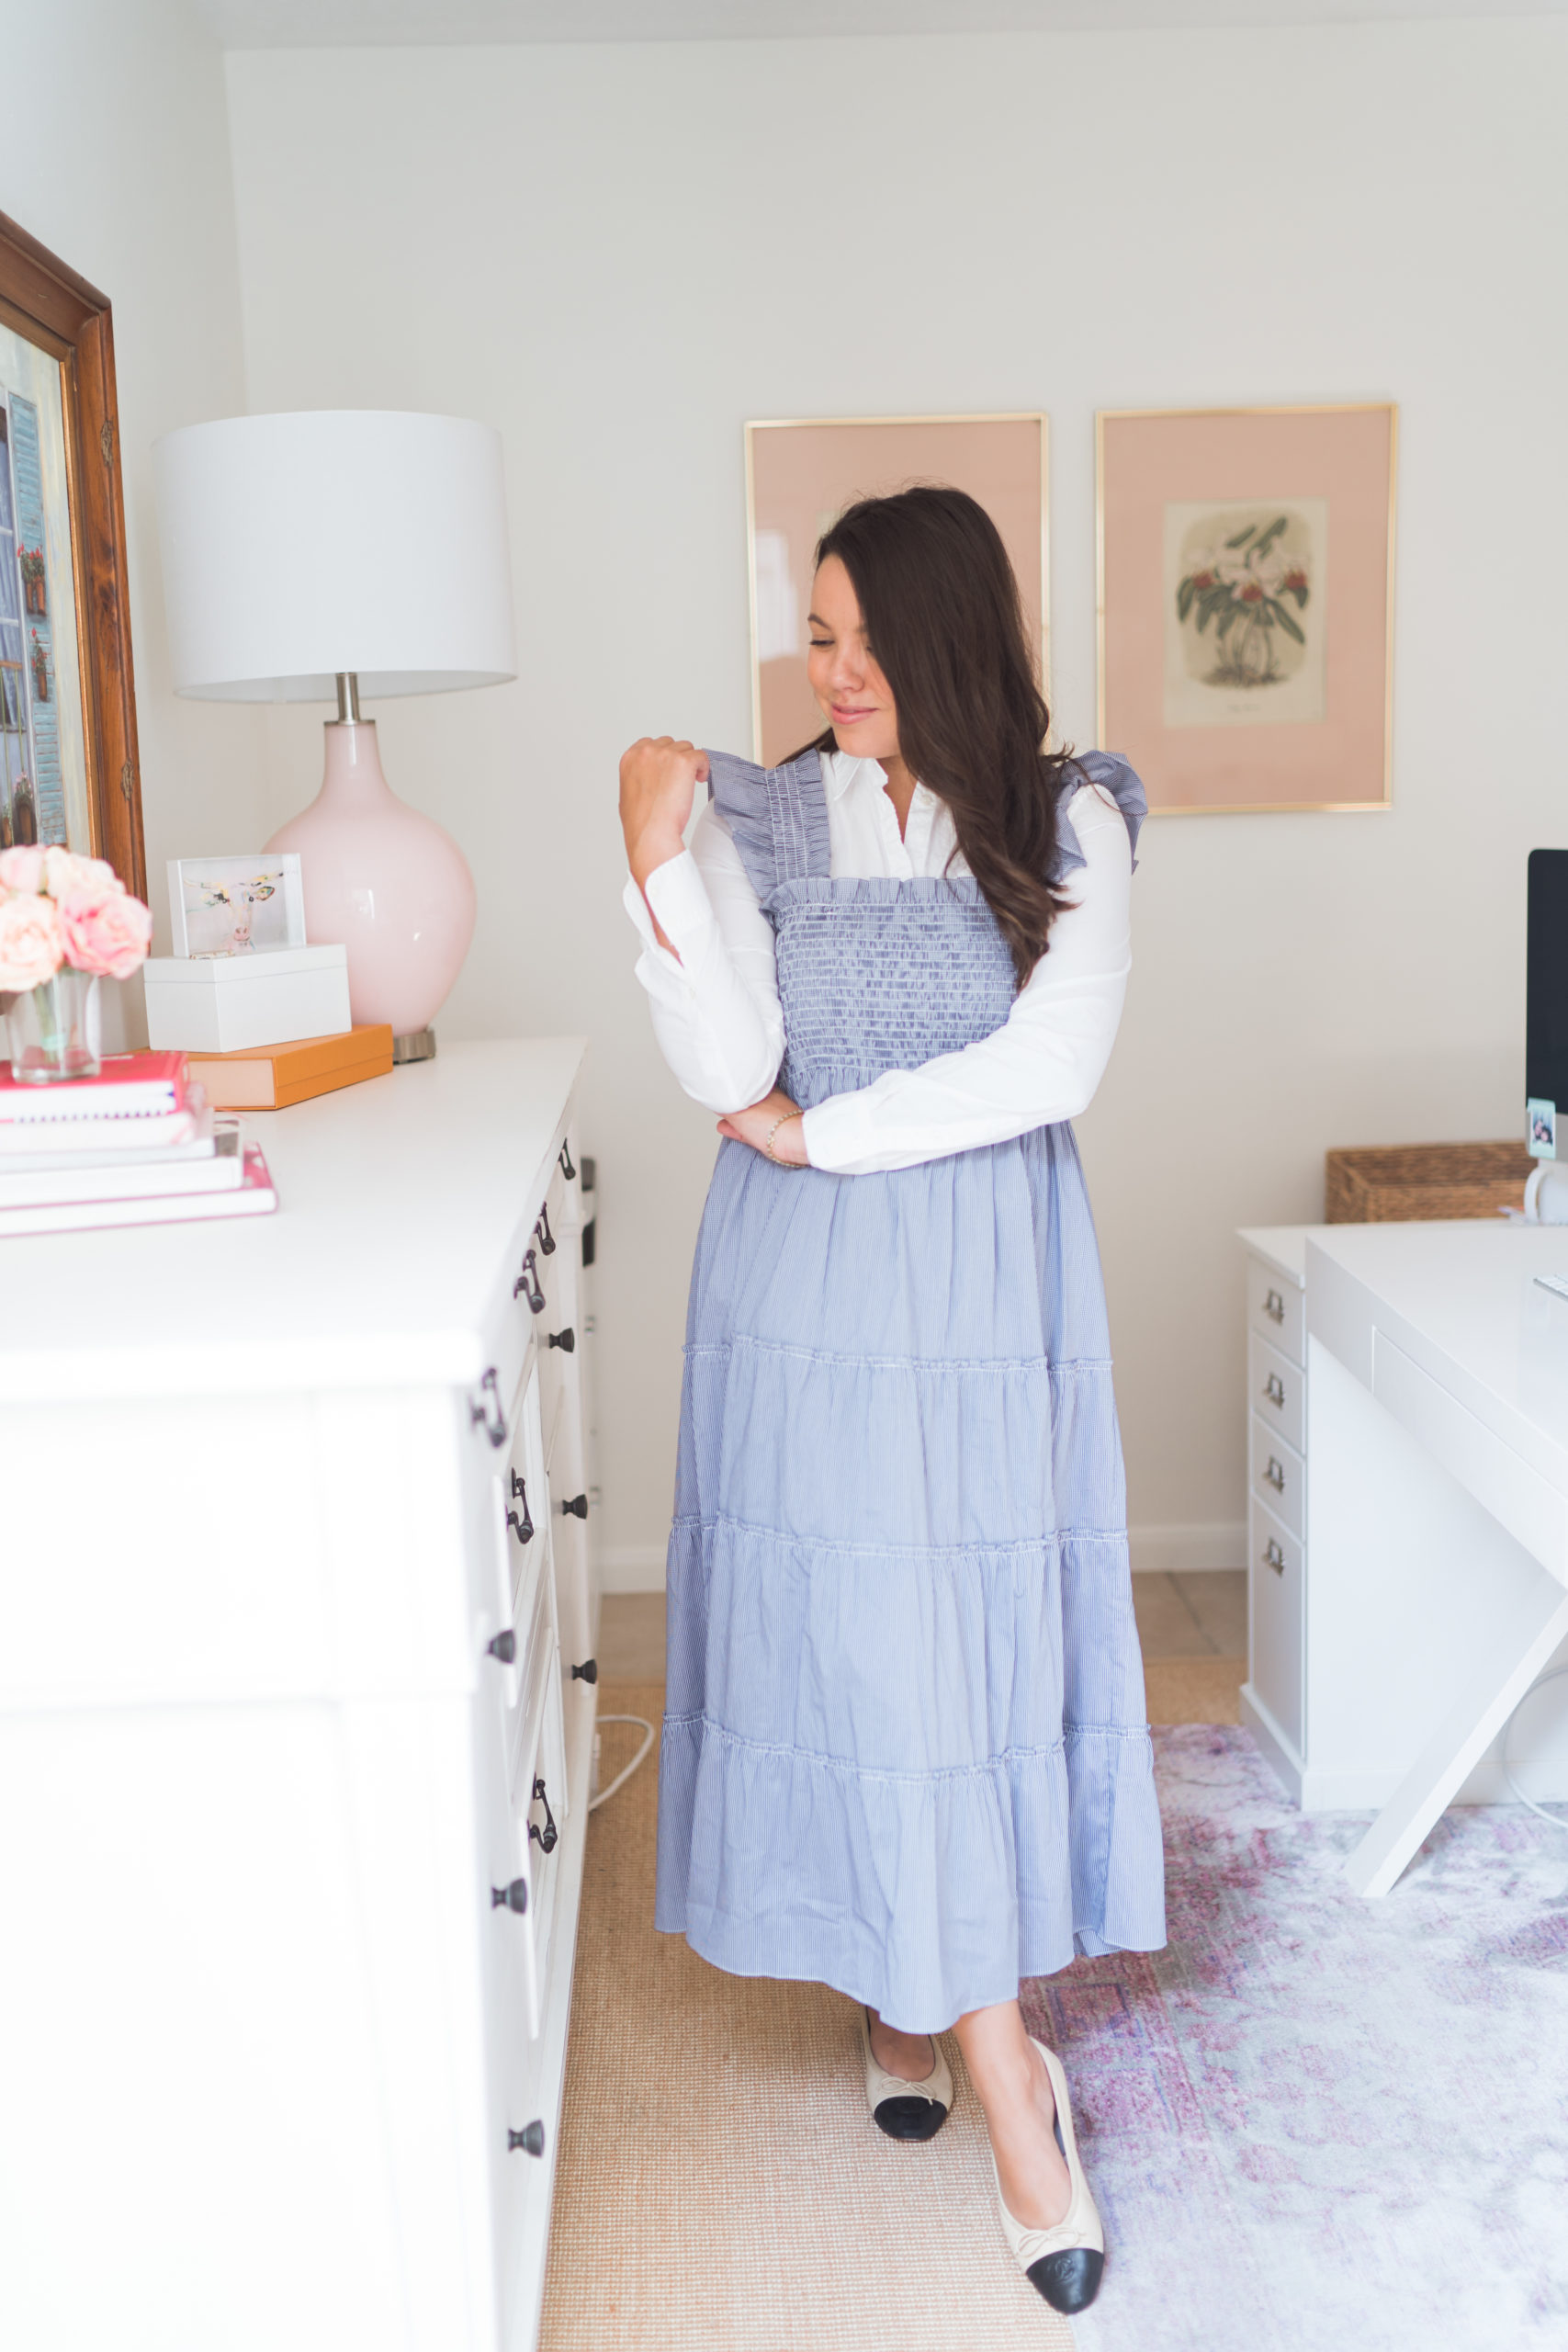 How to style the Hill House nap dress